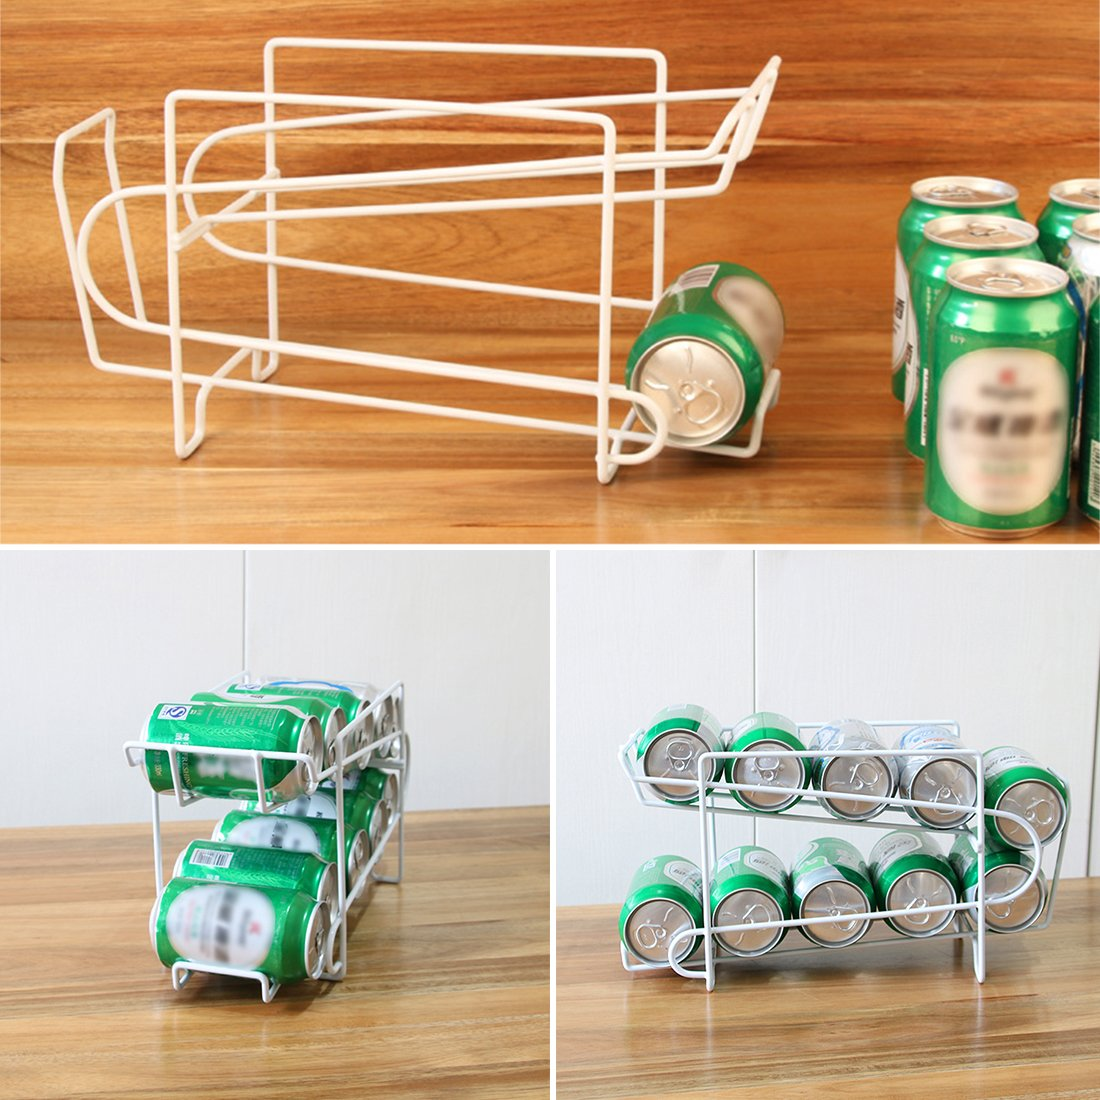 Amazon.com: Soda Beer Can Beverage Dispenser Organizer Space Saving Rack Double Layers Sturdy Iron Fridge Shelf Refrigerator Stand Kitchen Fridge Pantry Art ...